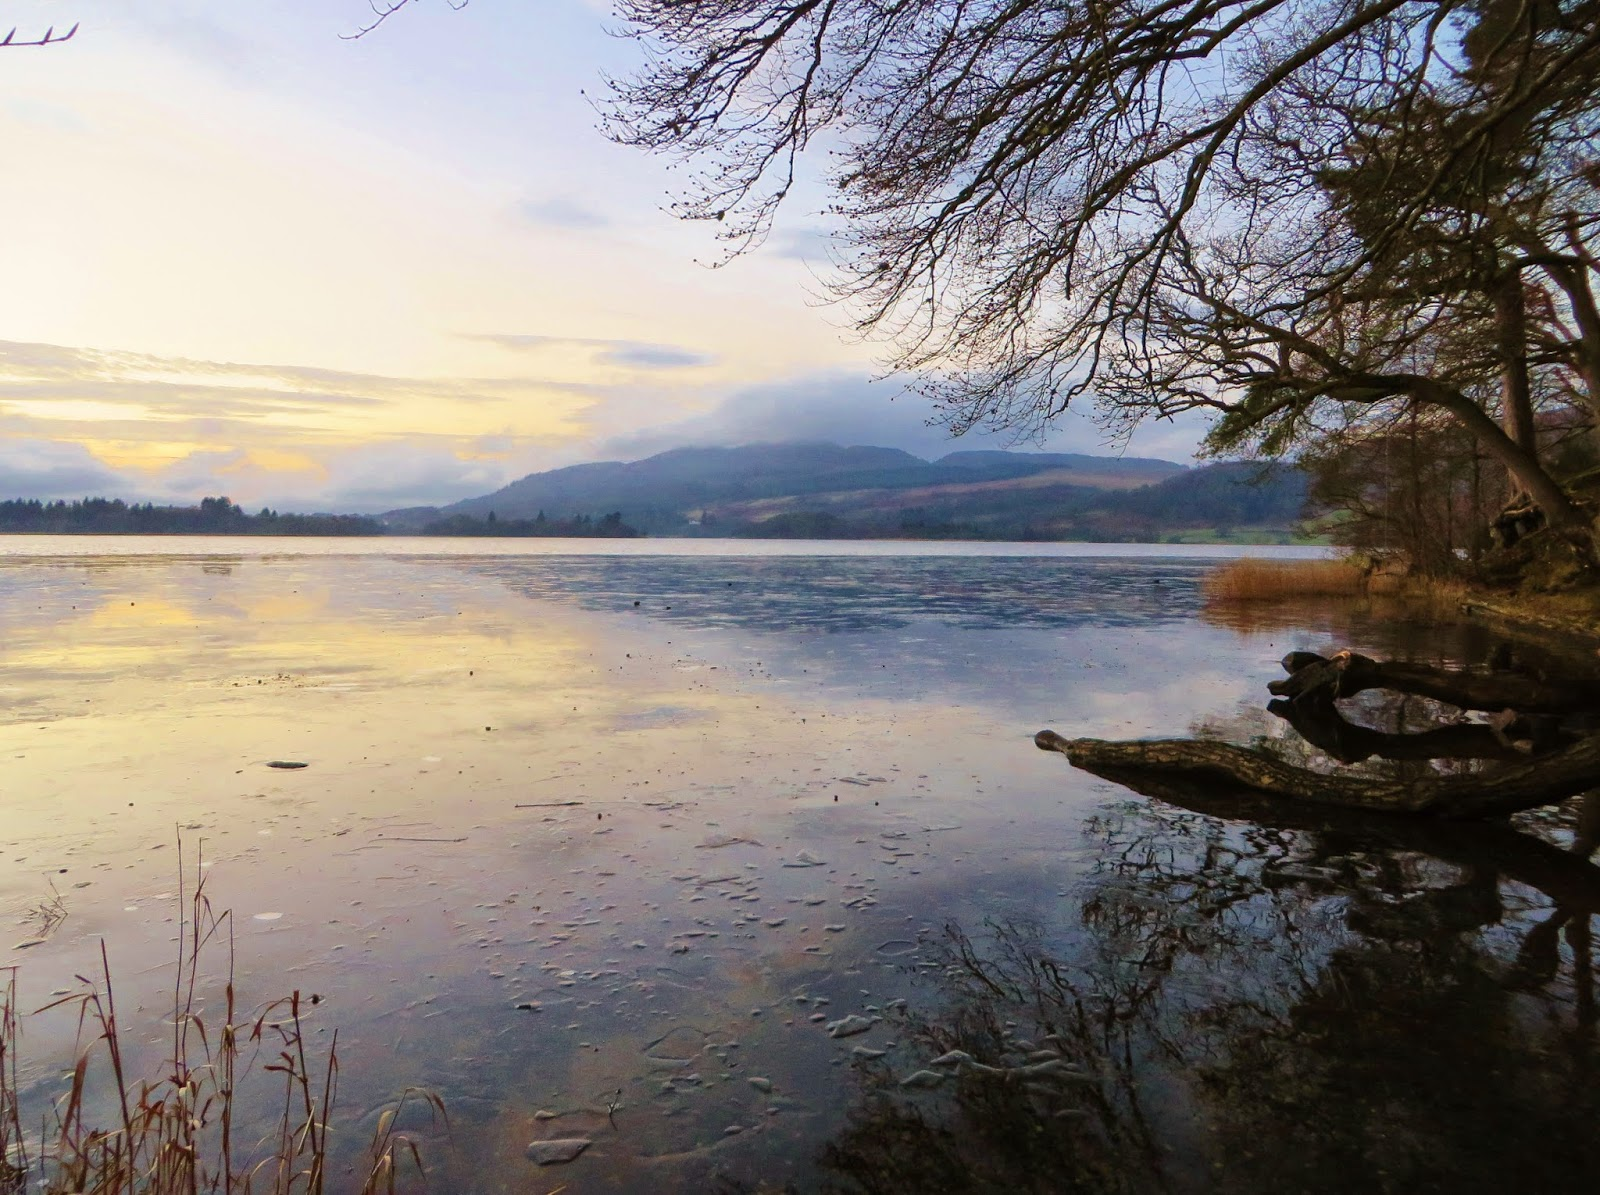 Lake of Menteith, Hairy Coo Tour, Ice lake, Scotland, Menteith, sunset